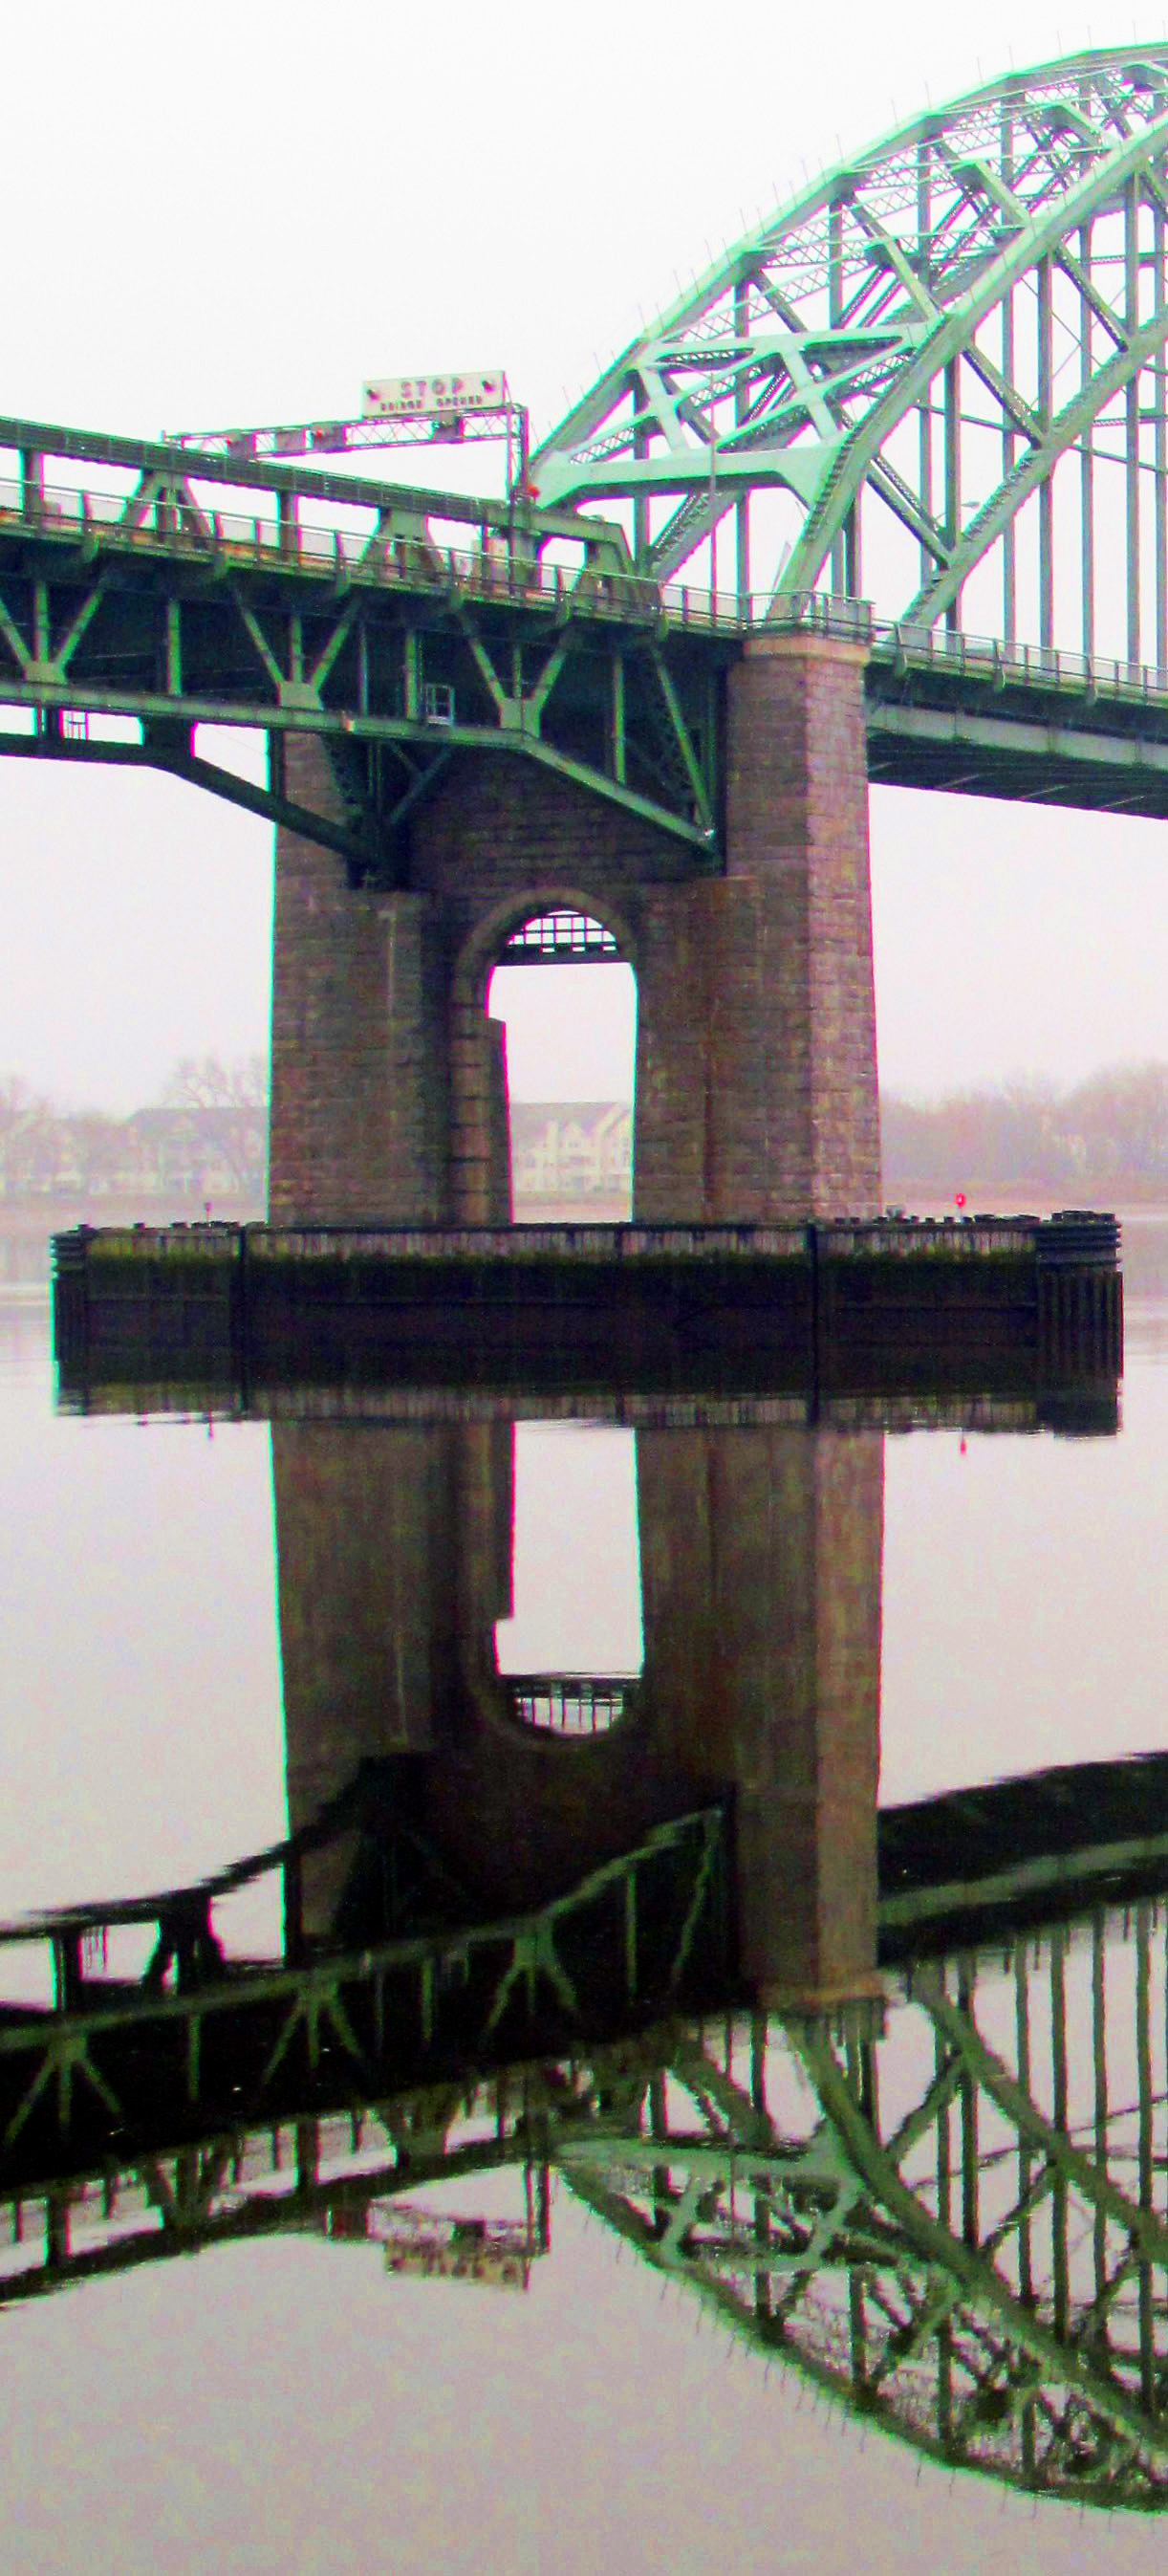 Bridge-Foundation-Pillars-Reflection